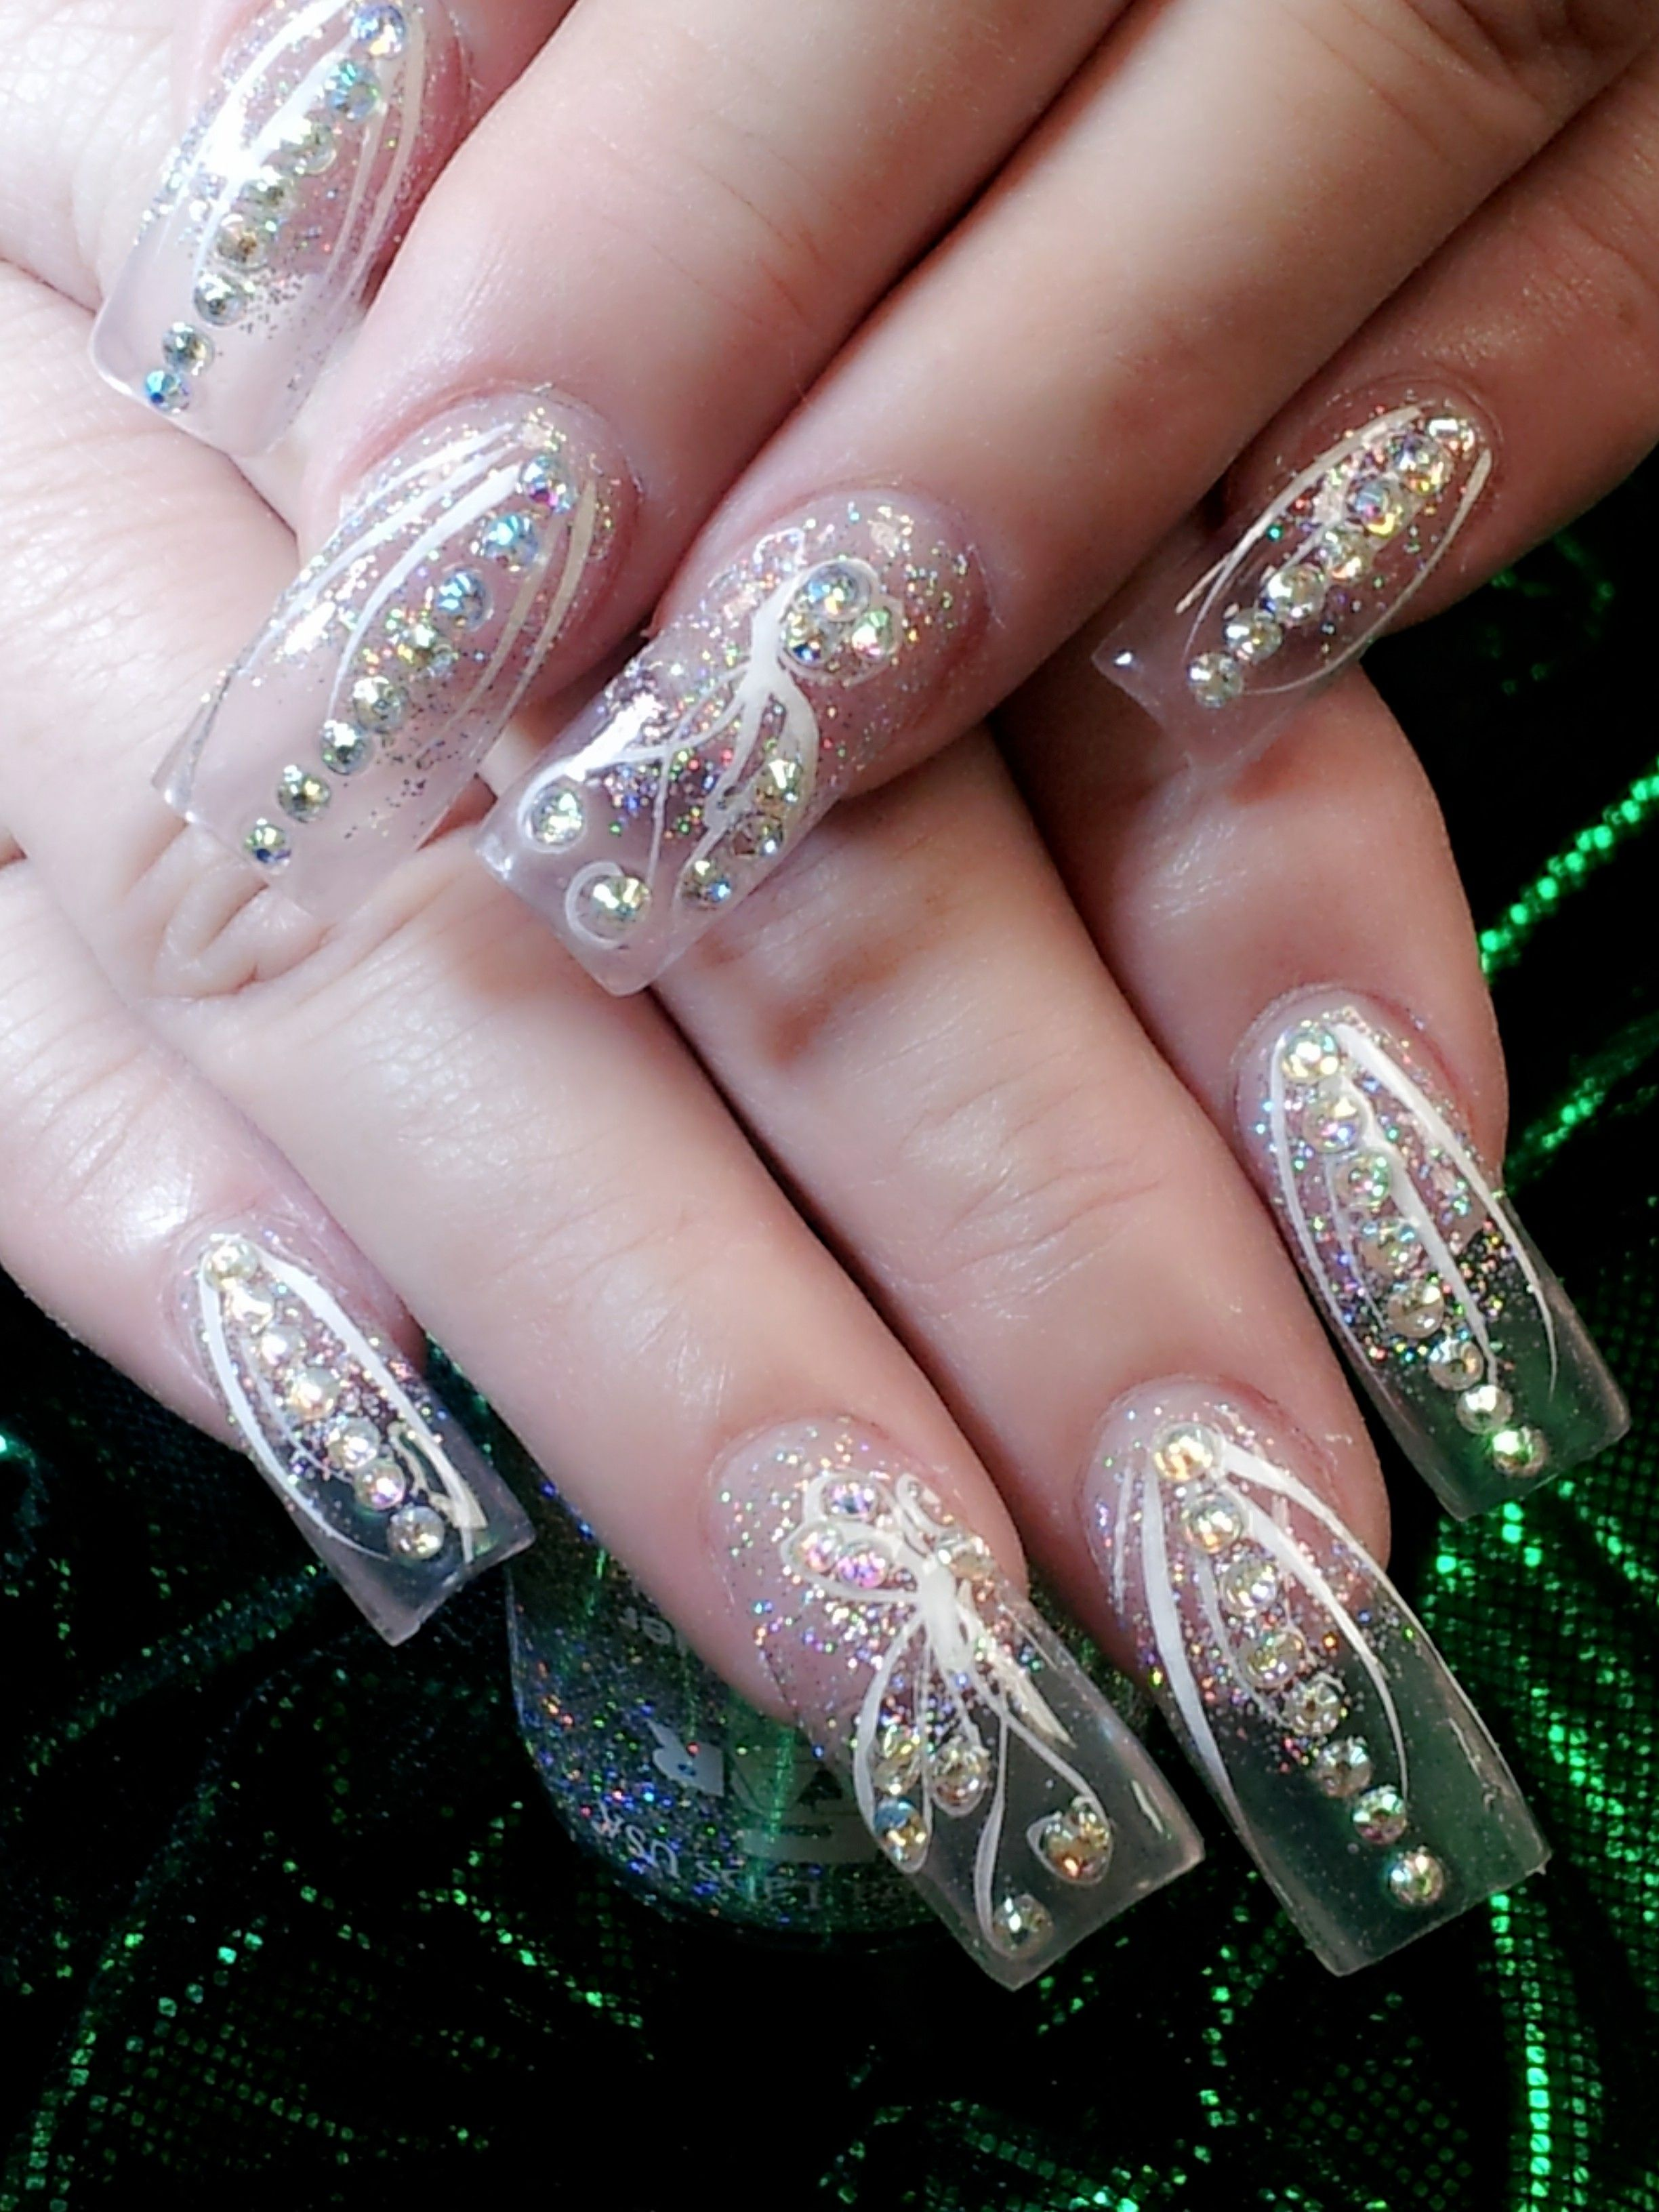 Crystal nails day 67 crystal clear nail art 2448x3264 new nail amazing picks for clear nail designs prinsesfo Images